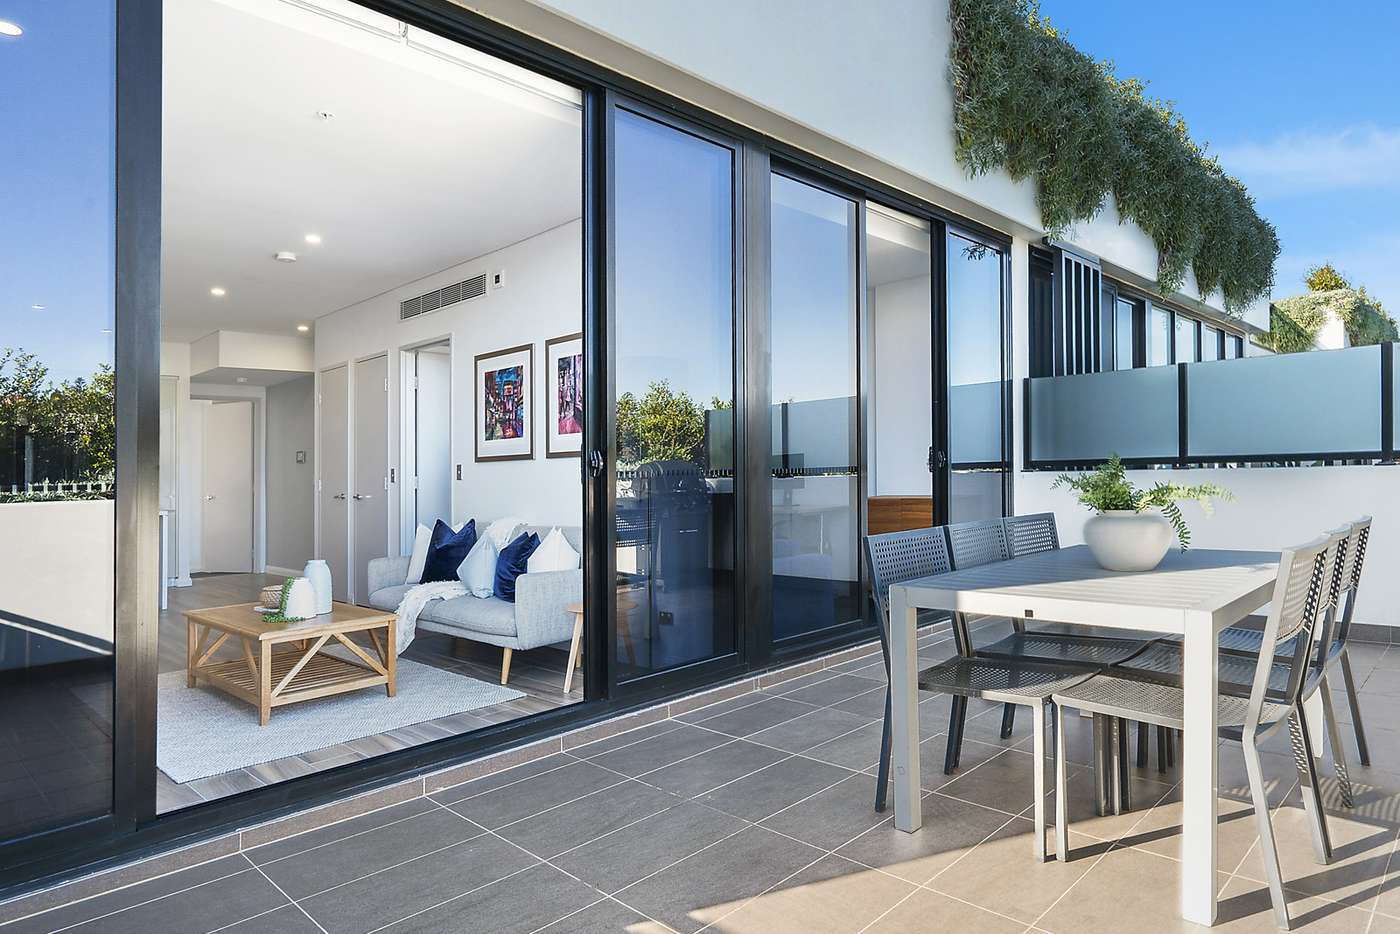 Main view of Homely apartment listing, 576/16 Oaks Avenue, Dee Why NSW 2099